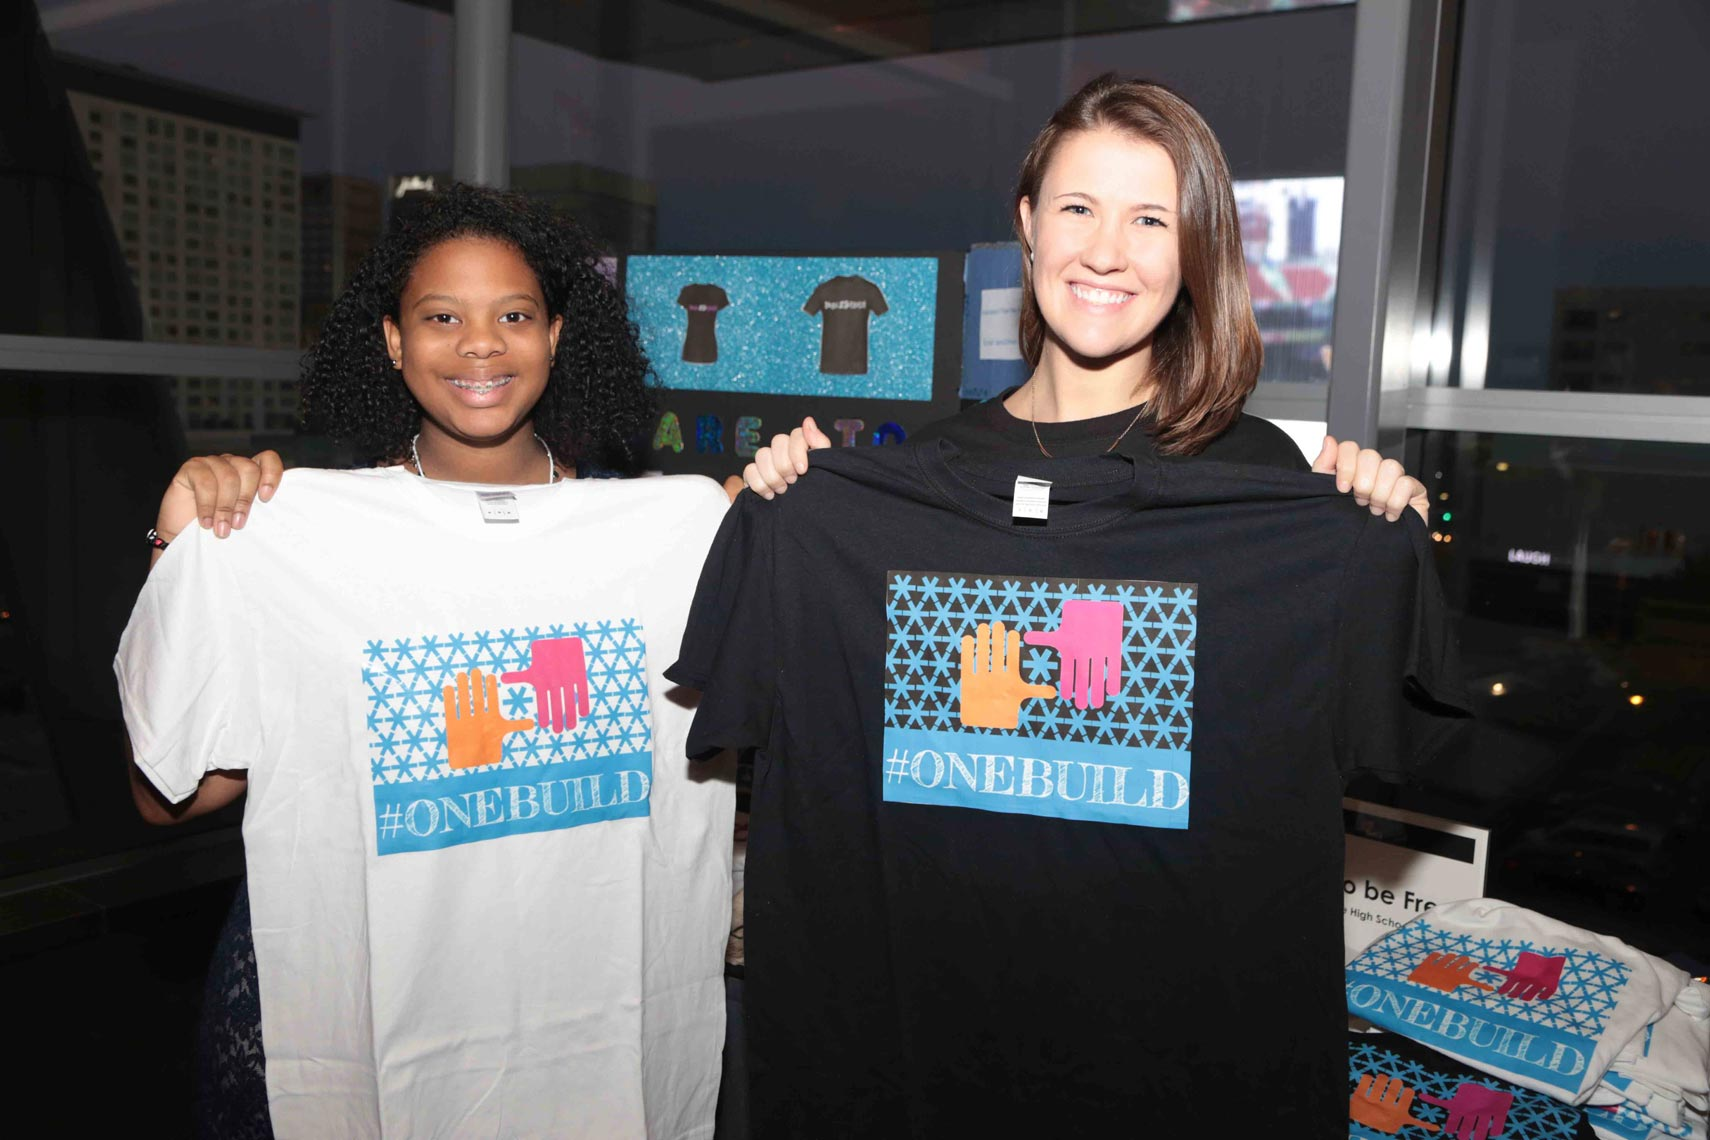 One Build T-Shirts for Sale at BUILDfest Student Business Expo